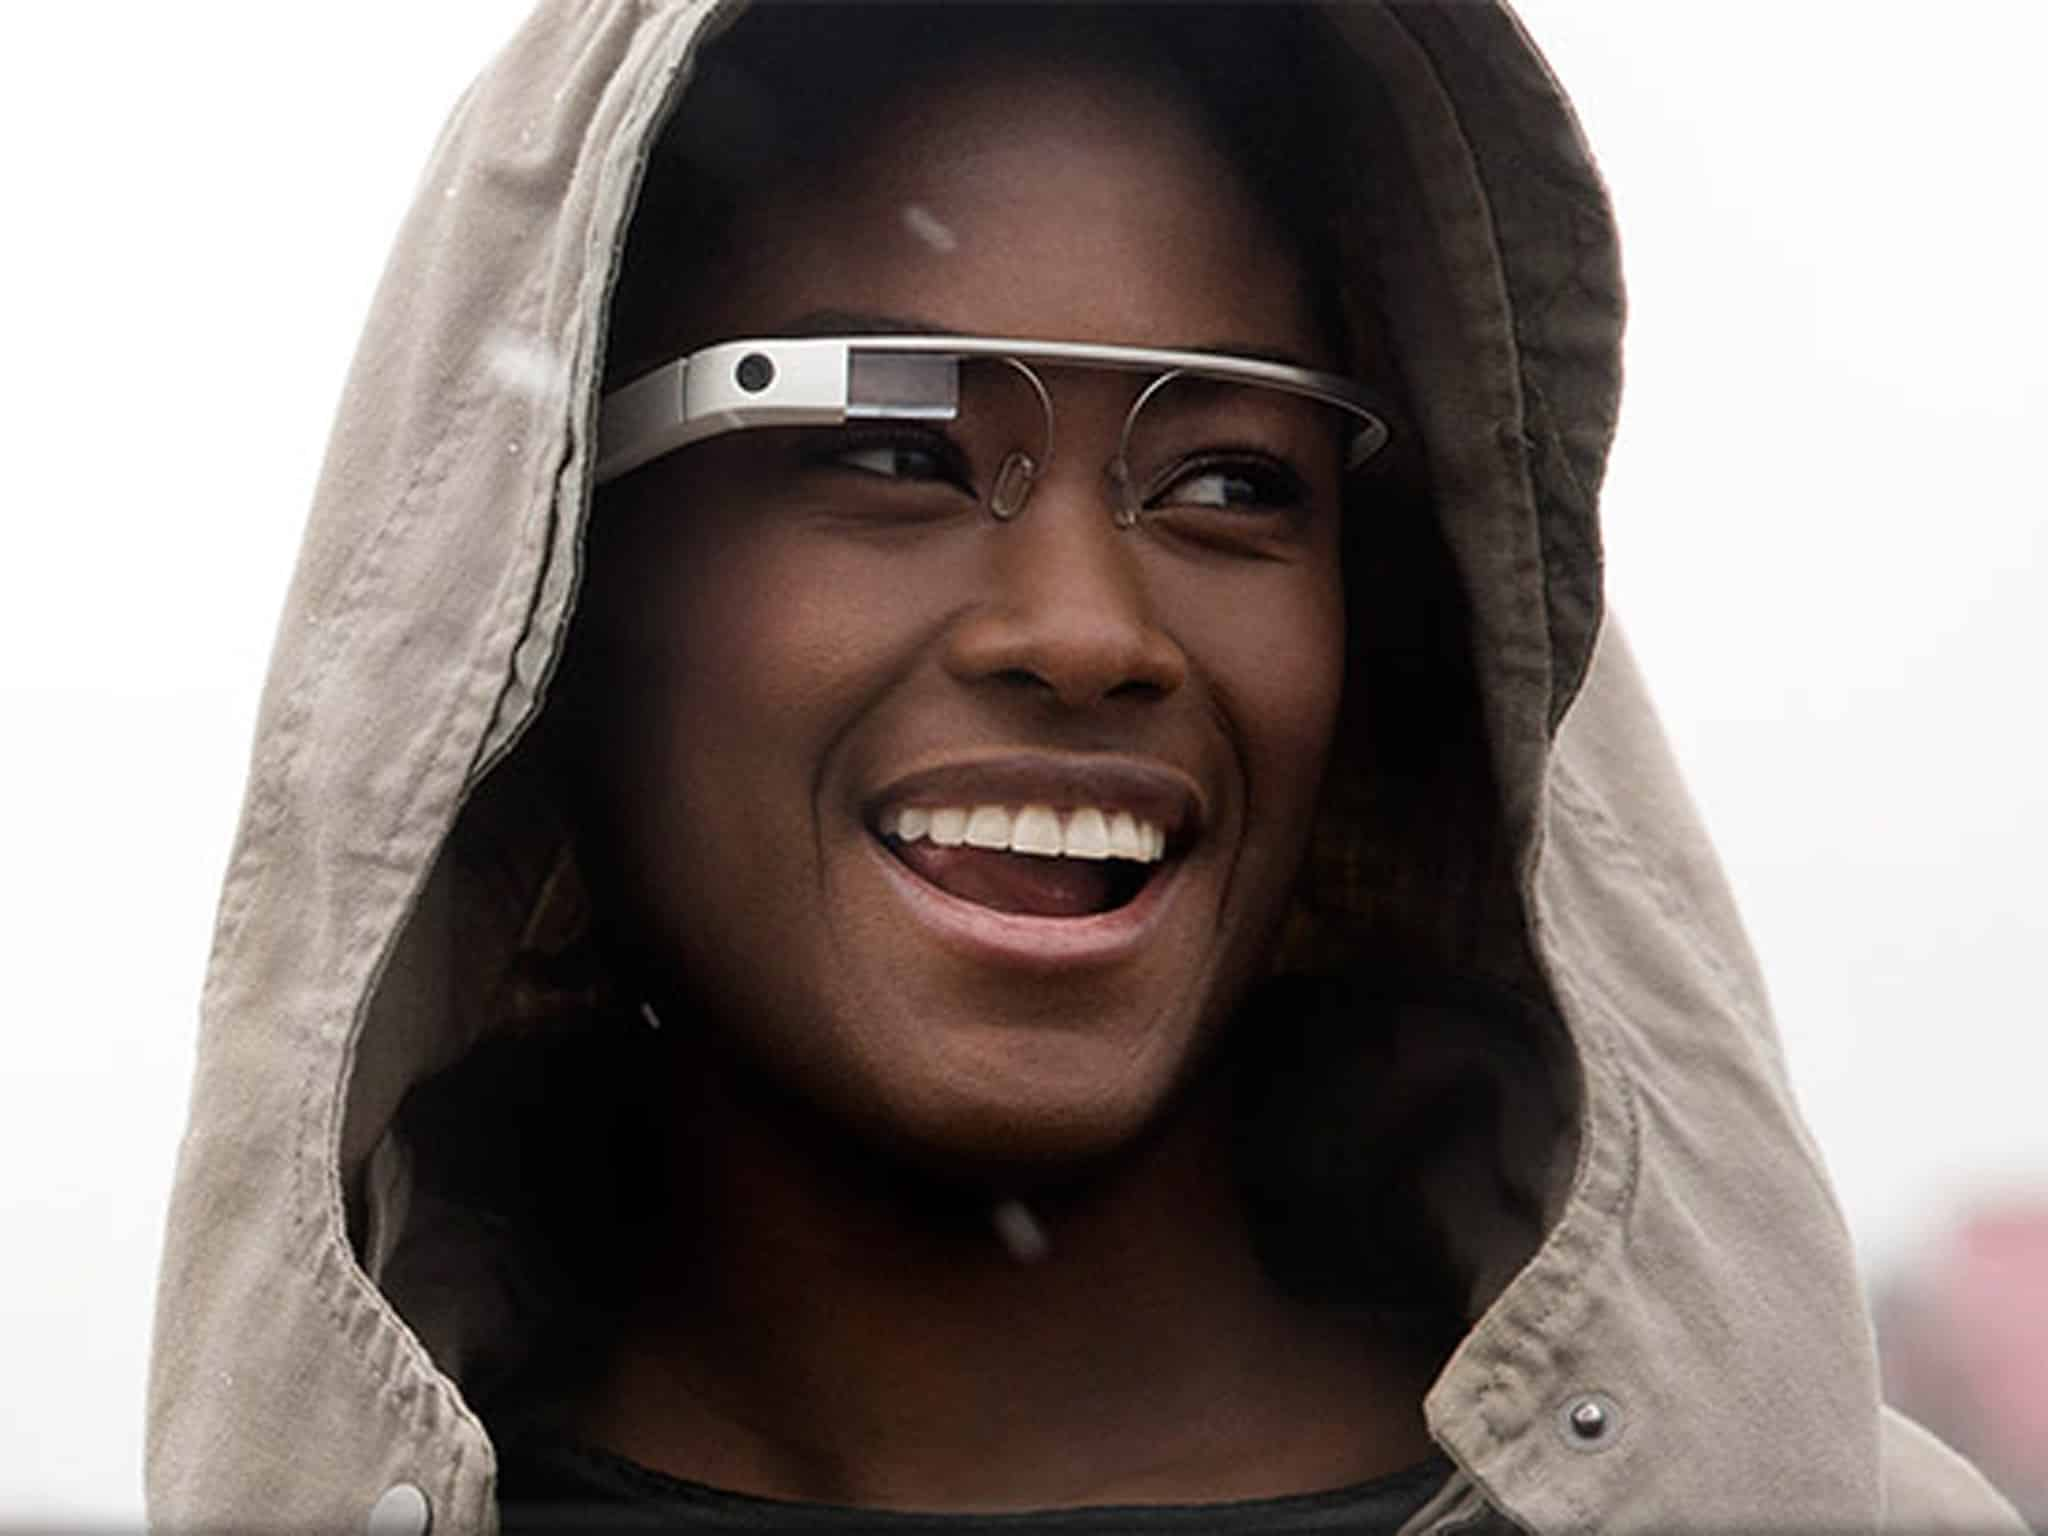 Changing Technology - How Google Glass Will Impact Our Lives And Technology As We Know It 11